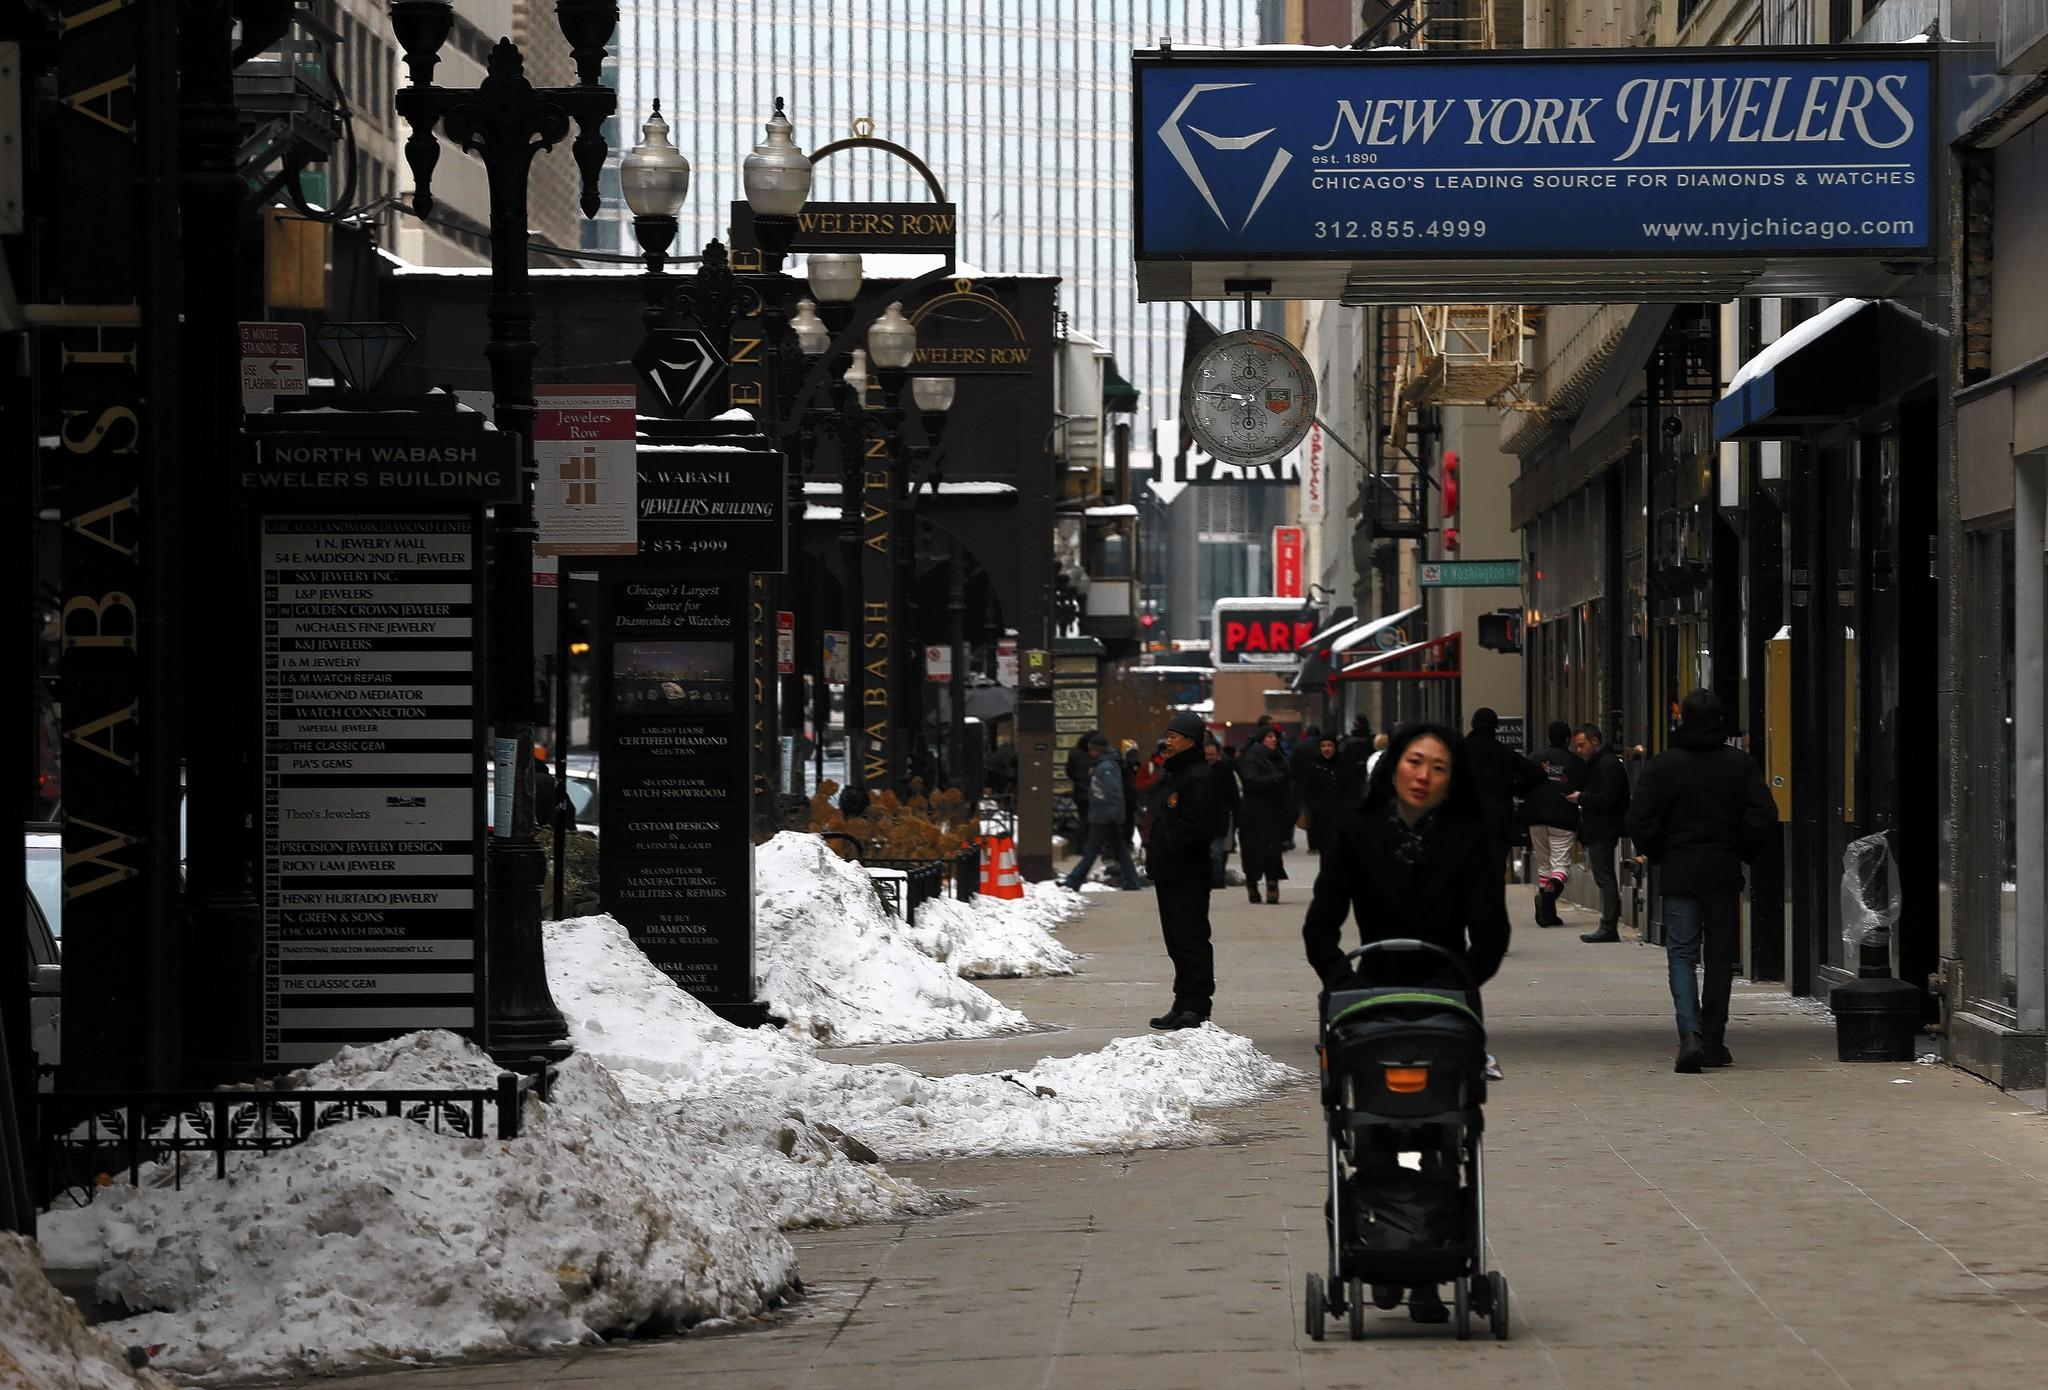 One of the group's main goals for the next five years is to revitalize Wabash Avenue, home to historic buildings, Jewelers Row and a hodgepodge of shops and vacancies.